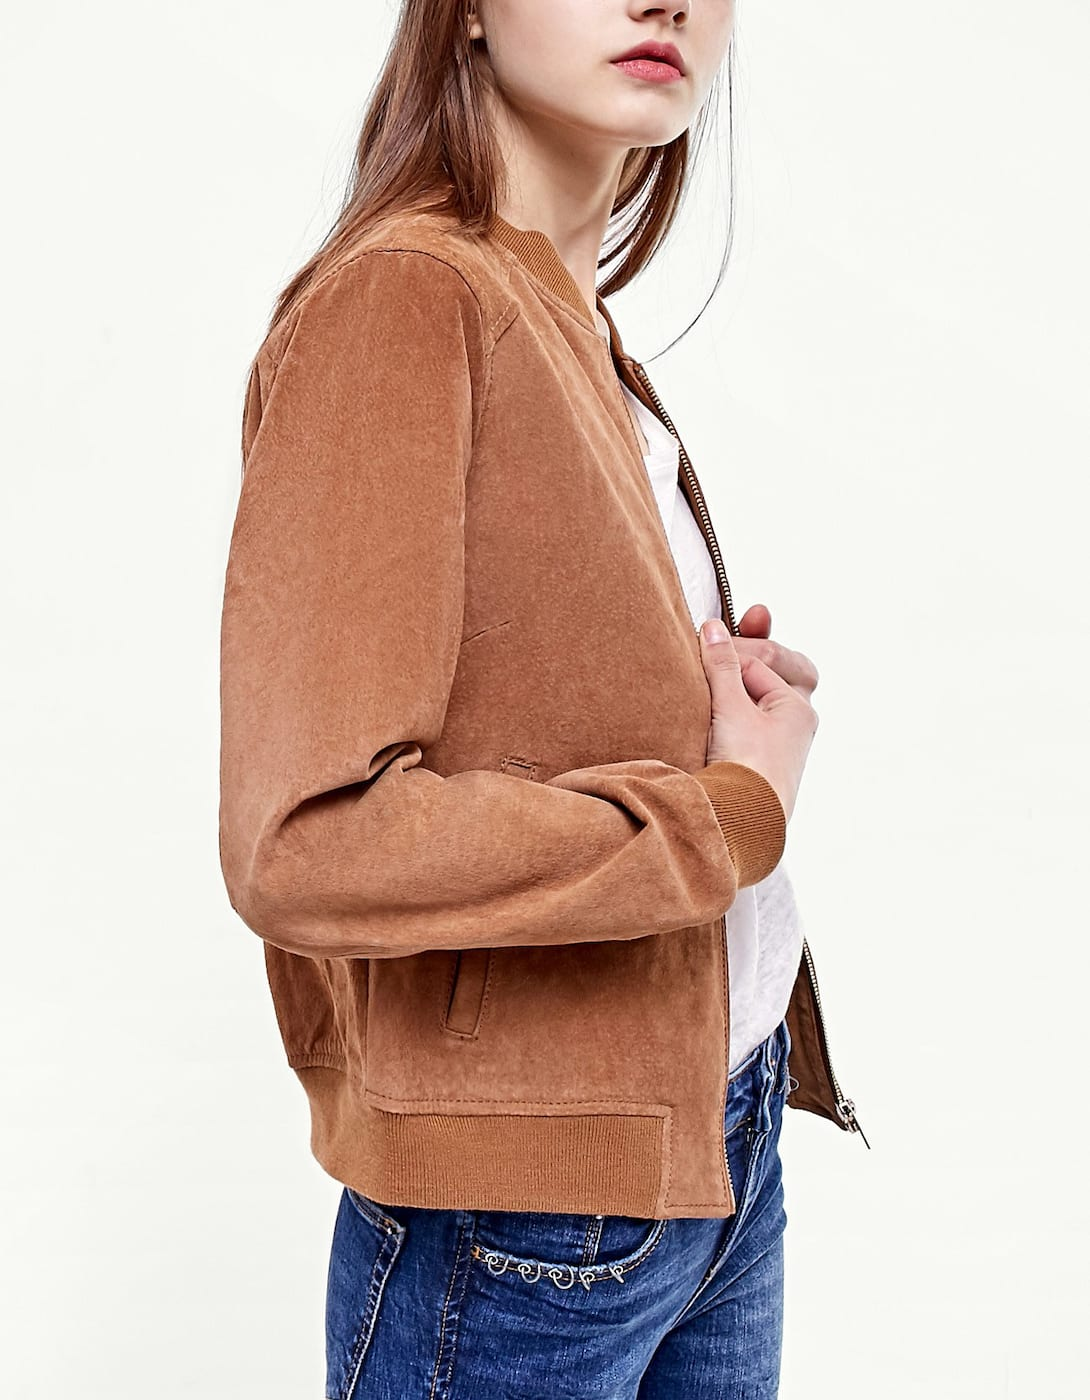 Suede baseball jacket - Jackets | Stradivarius Republic of Ireland